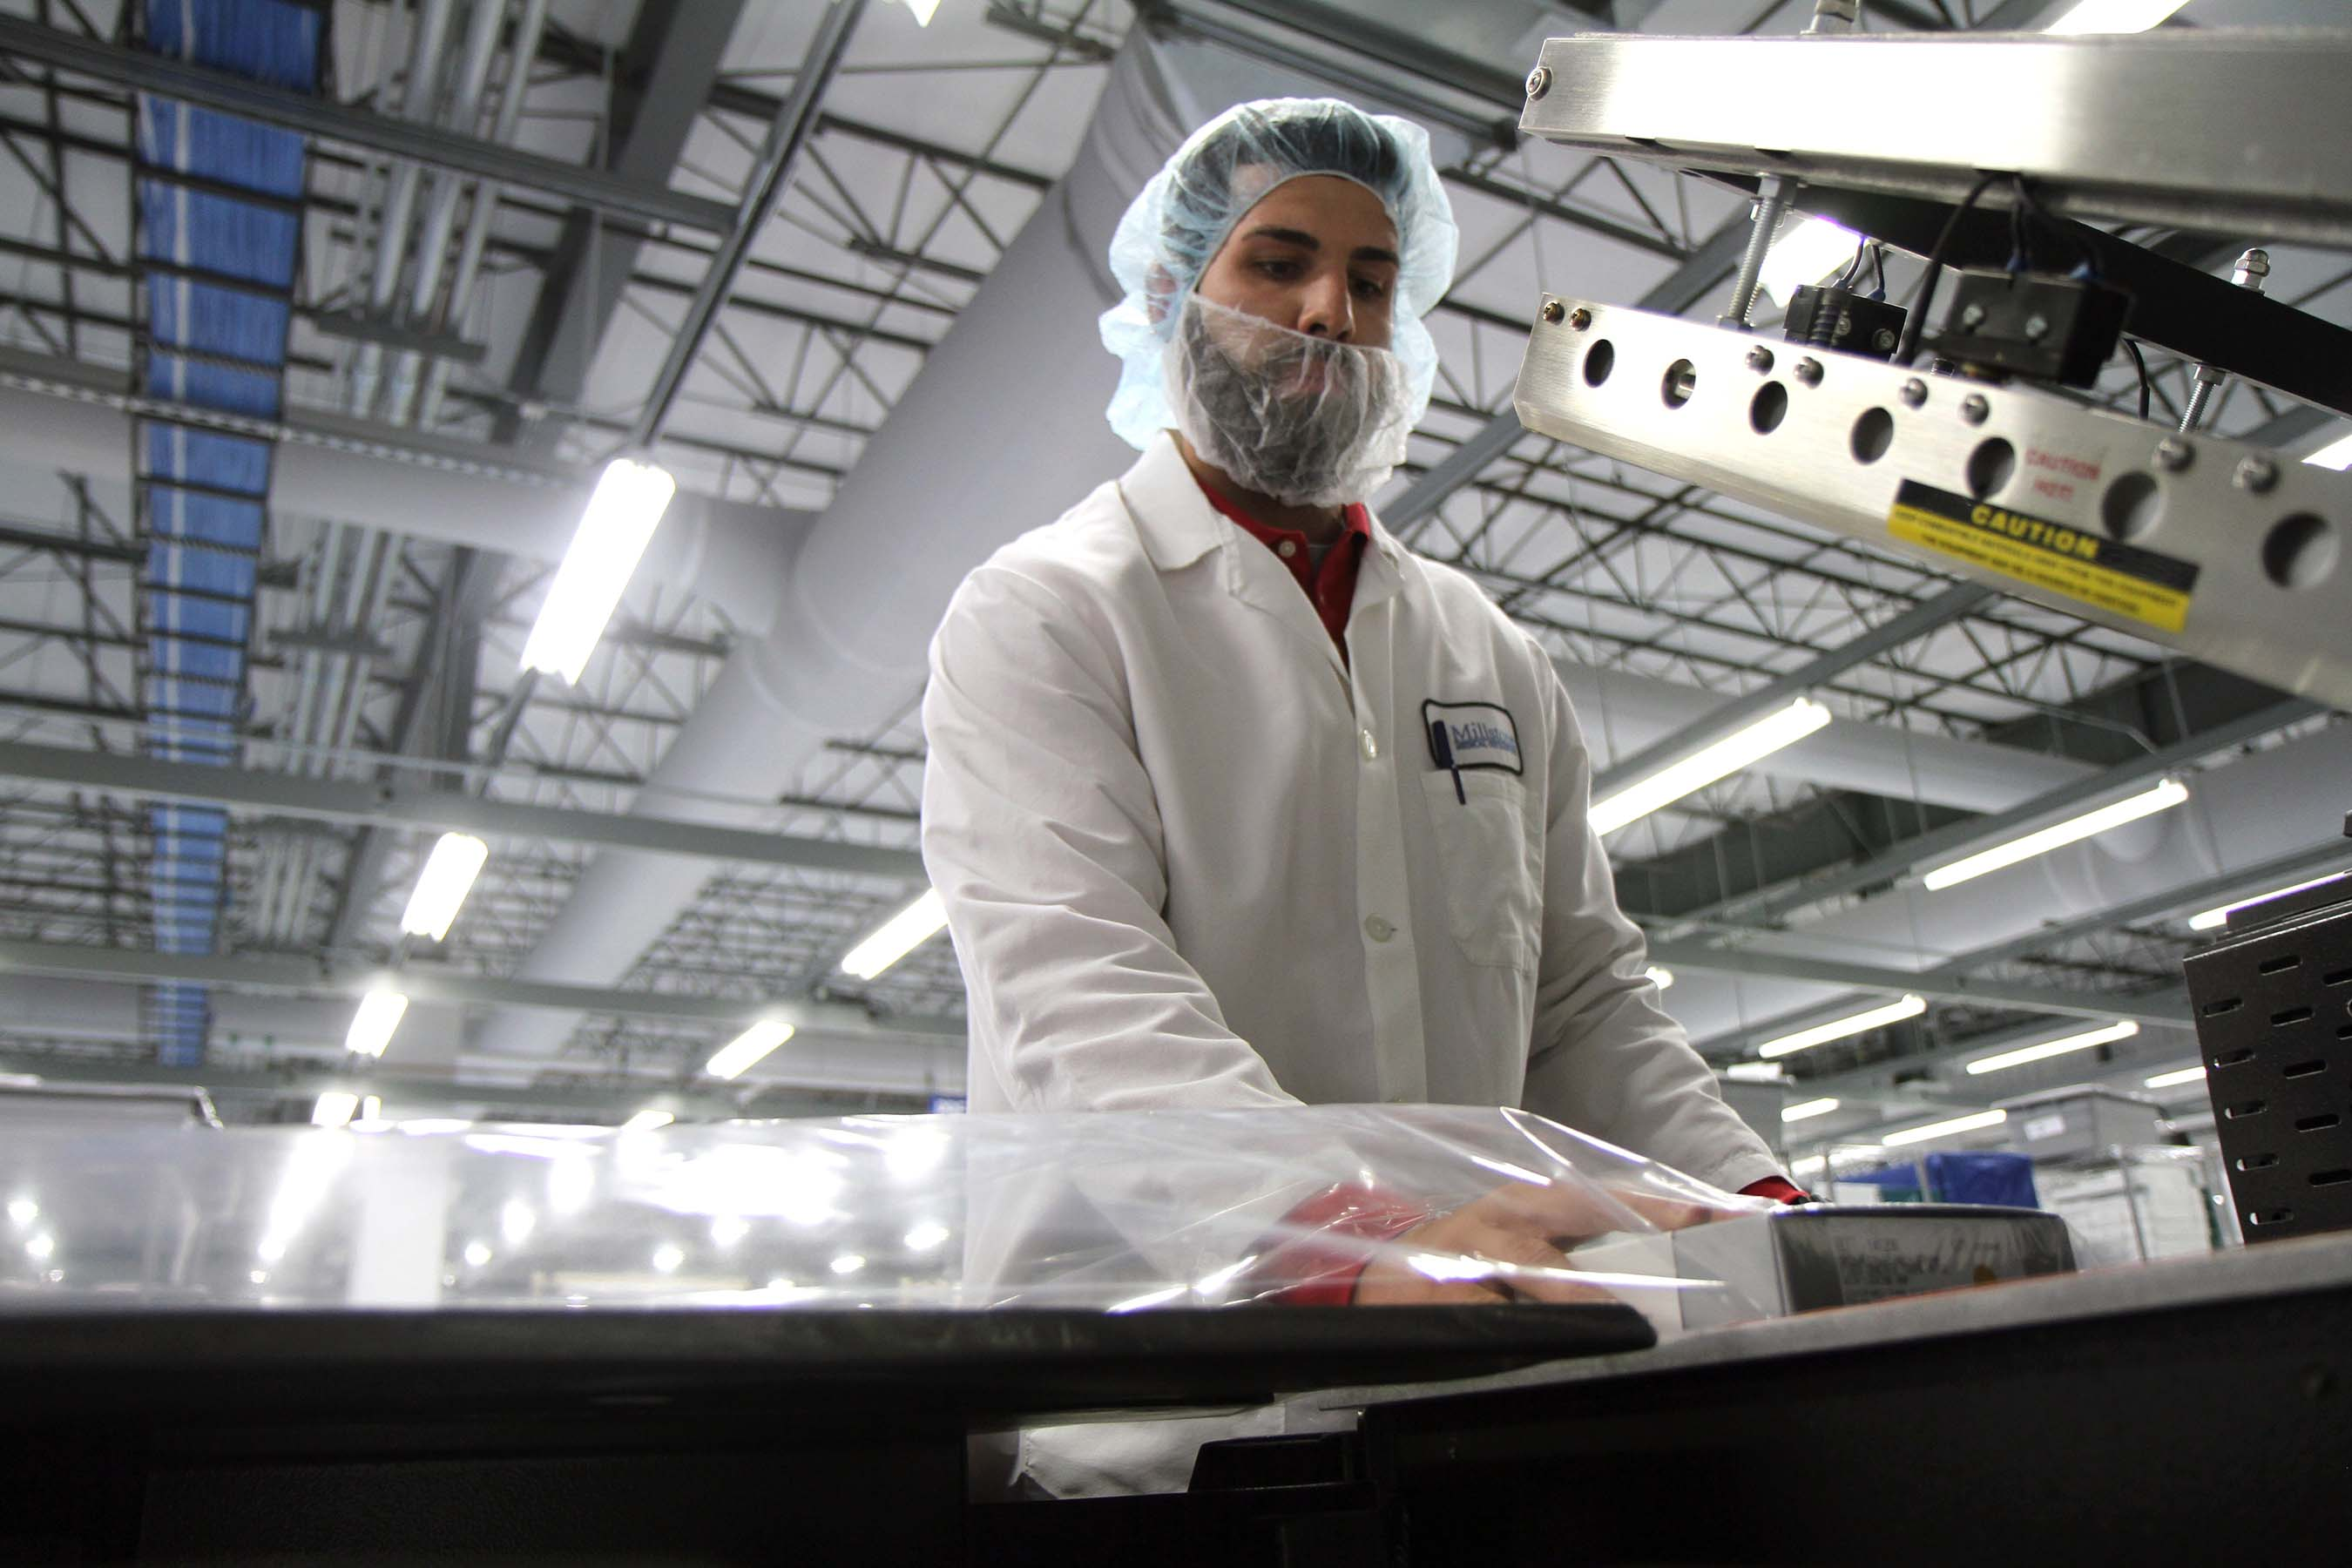 A look at a Millstone Medical employee in their clean packaging room